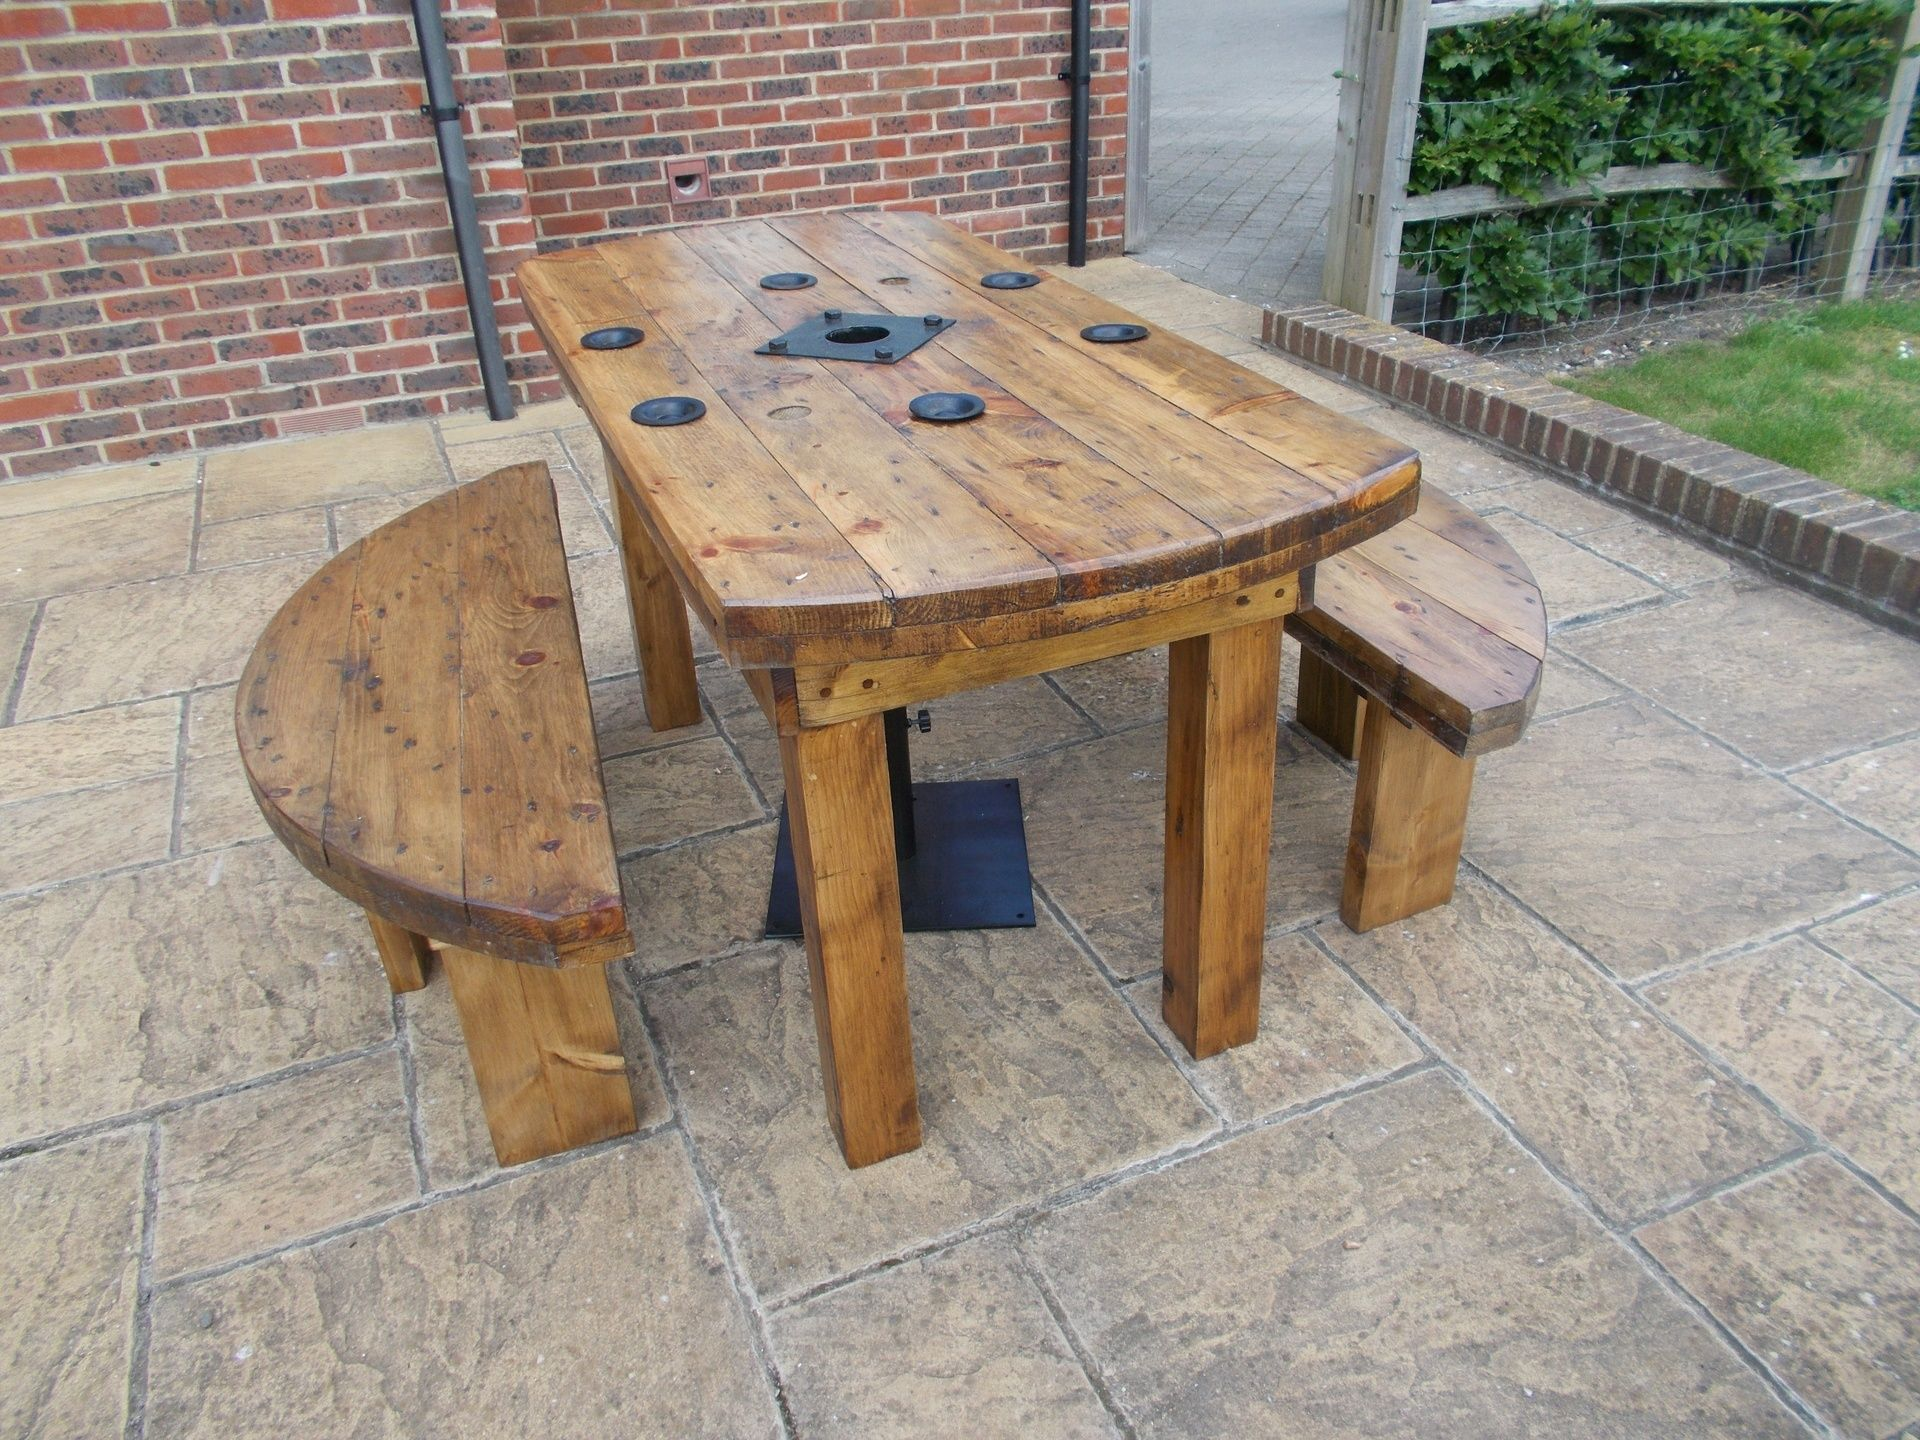 Awesome Cable drum table and bench sets great inside or out